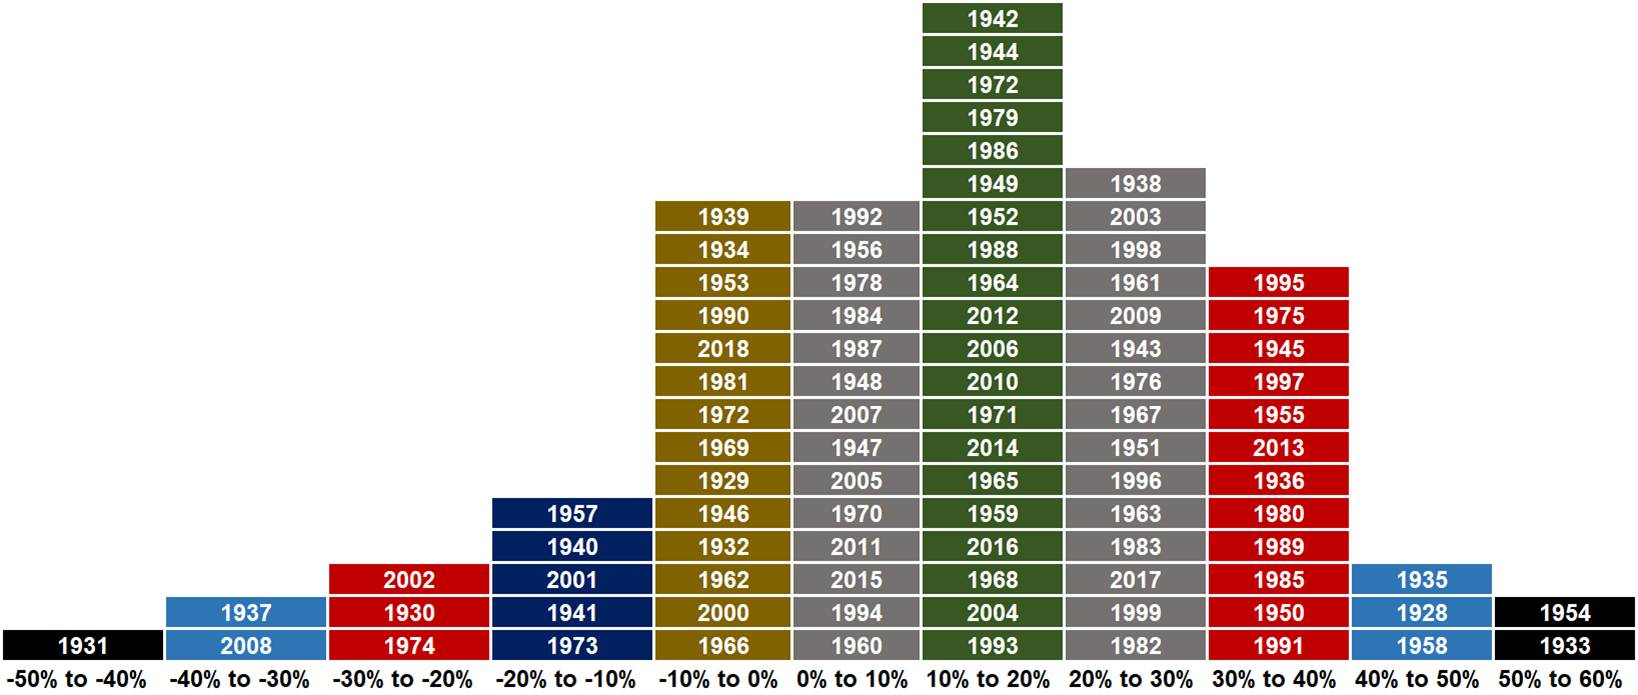 S&p 500 Calendar Year Returns